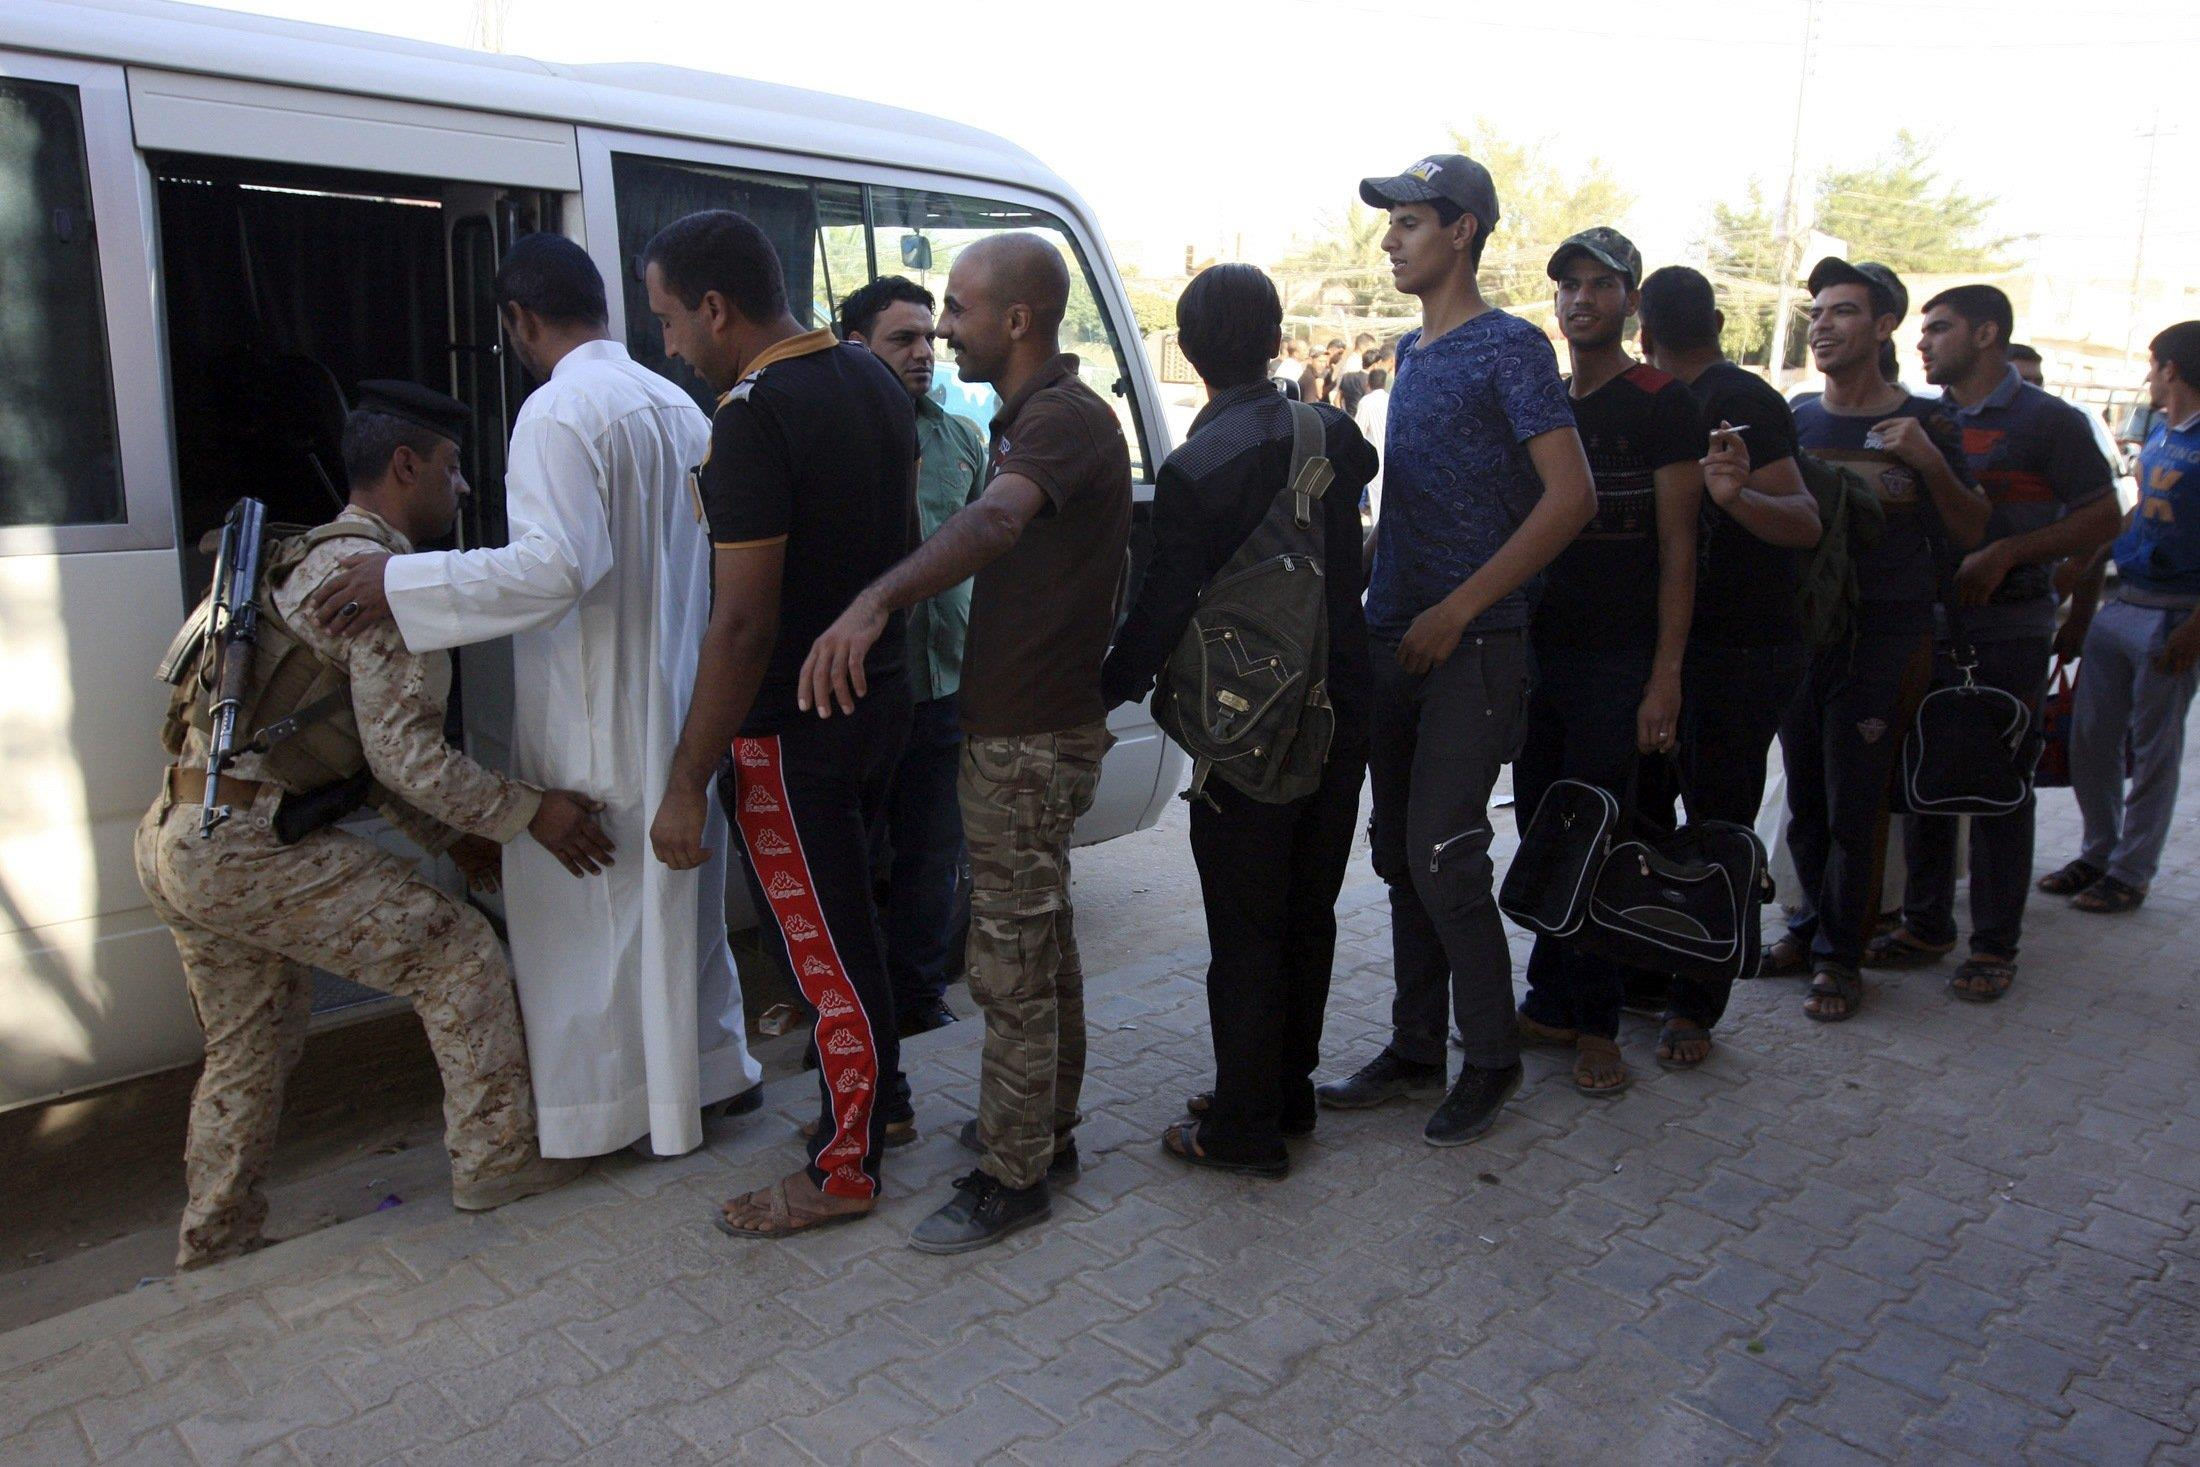 Image: Volunteers, who have joined the Iraqi army to fight against the predominantly Sunni militants from the radical Islamic State of Iraq and the Levant (ISIL) who have taken over Mosul and other northern provinces, prepare to board a bus in Kerbala